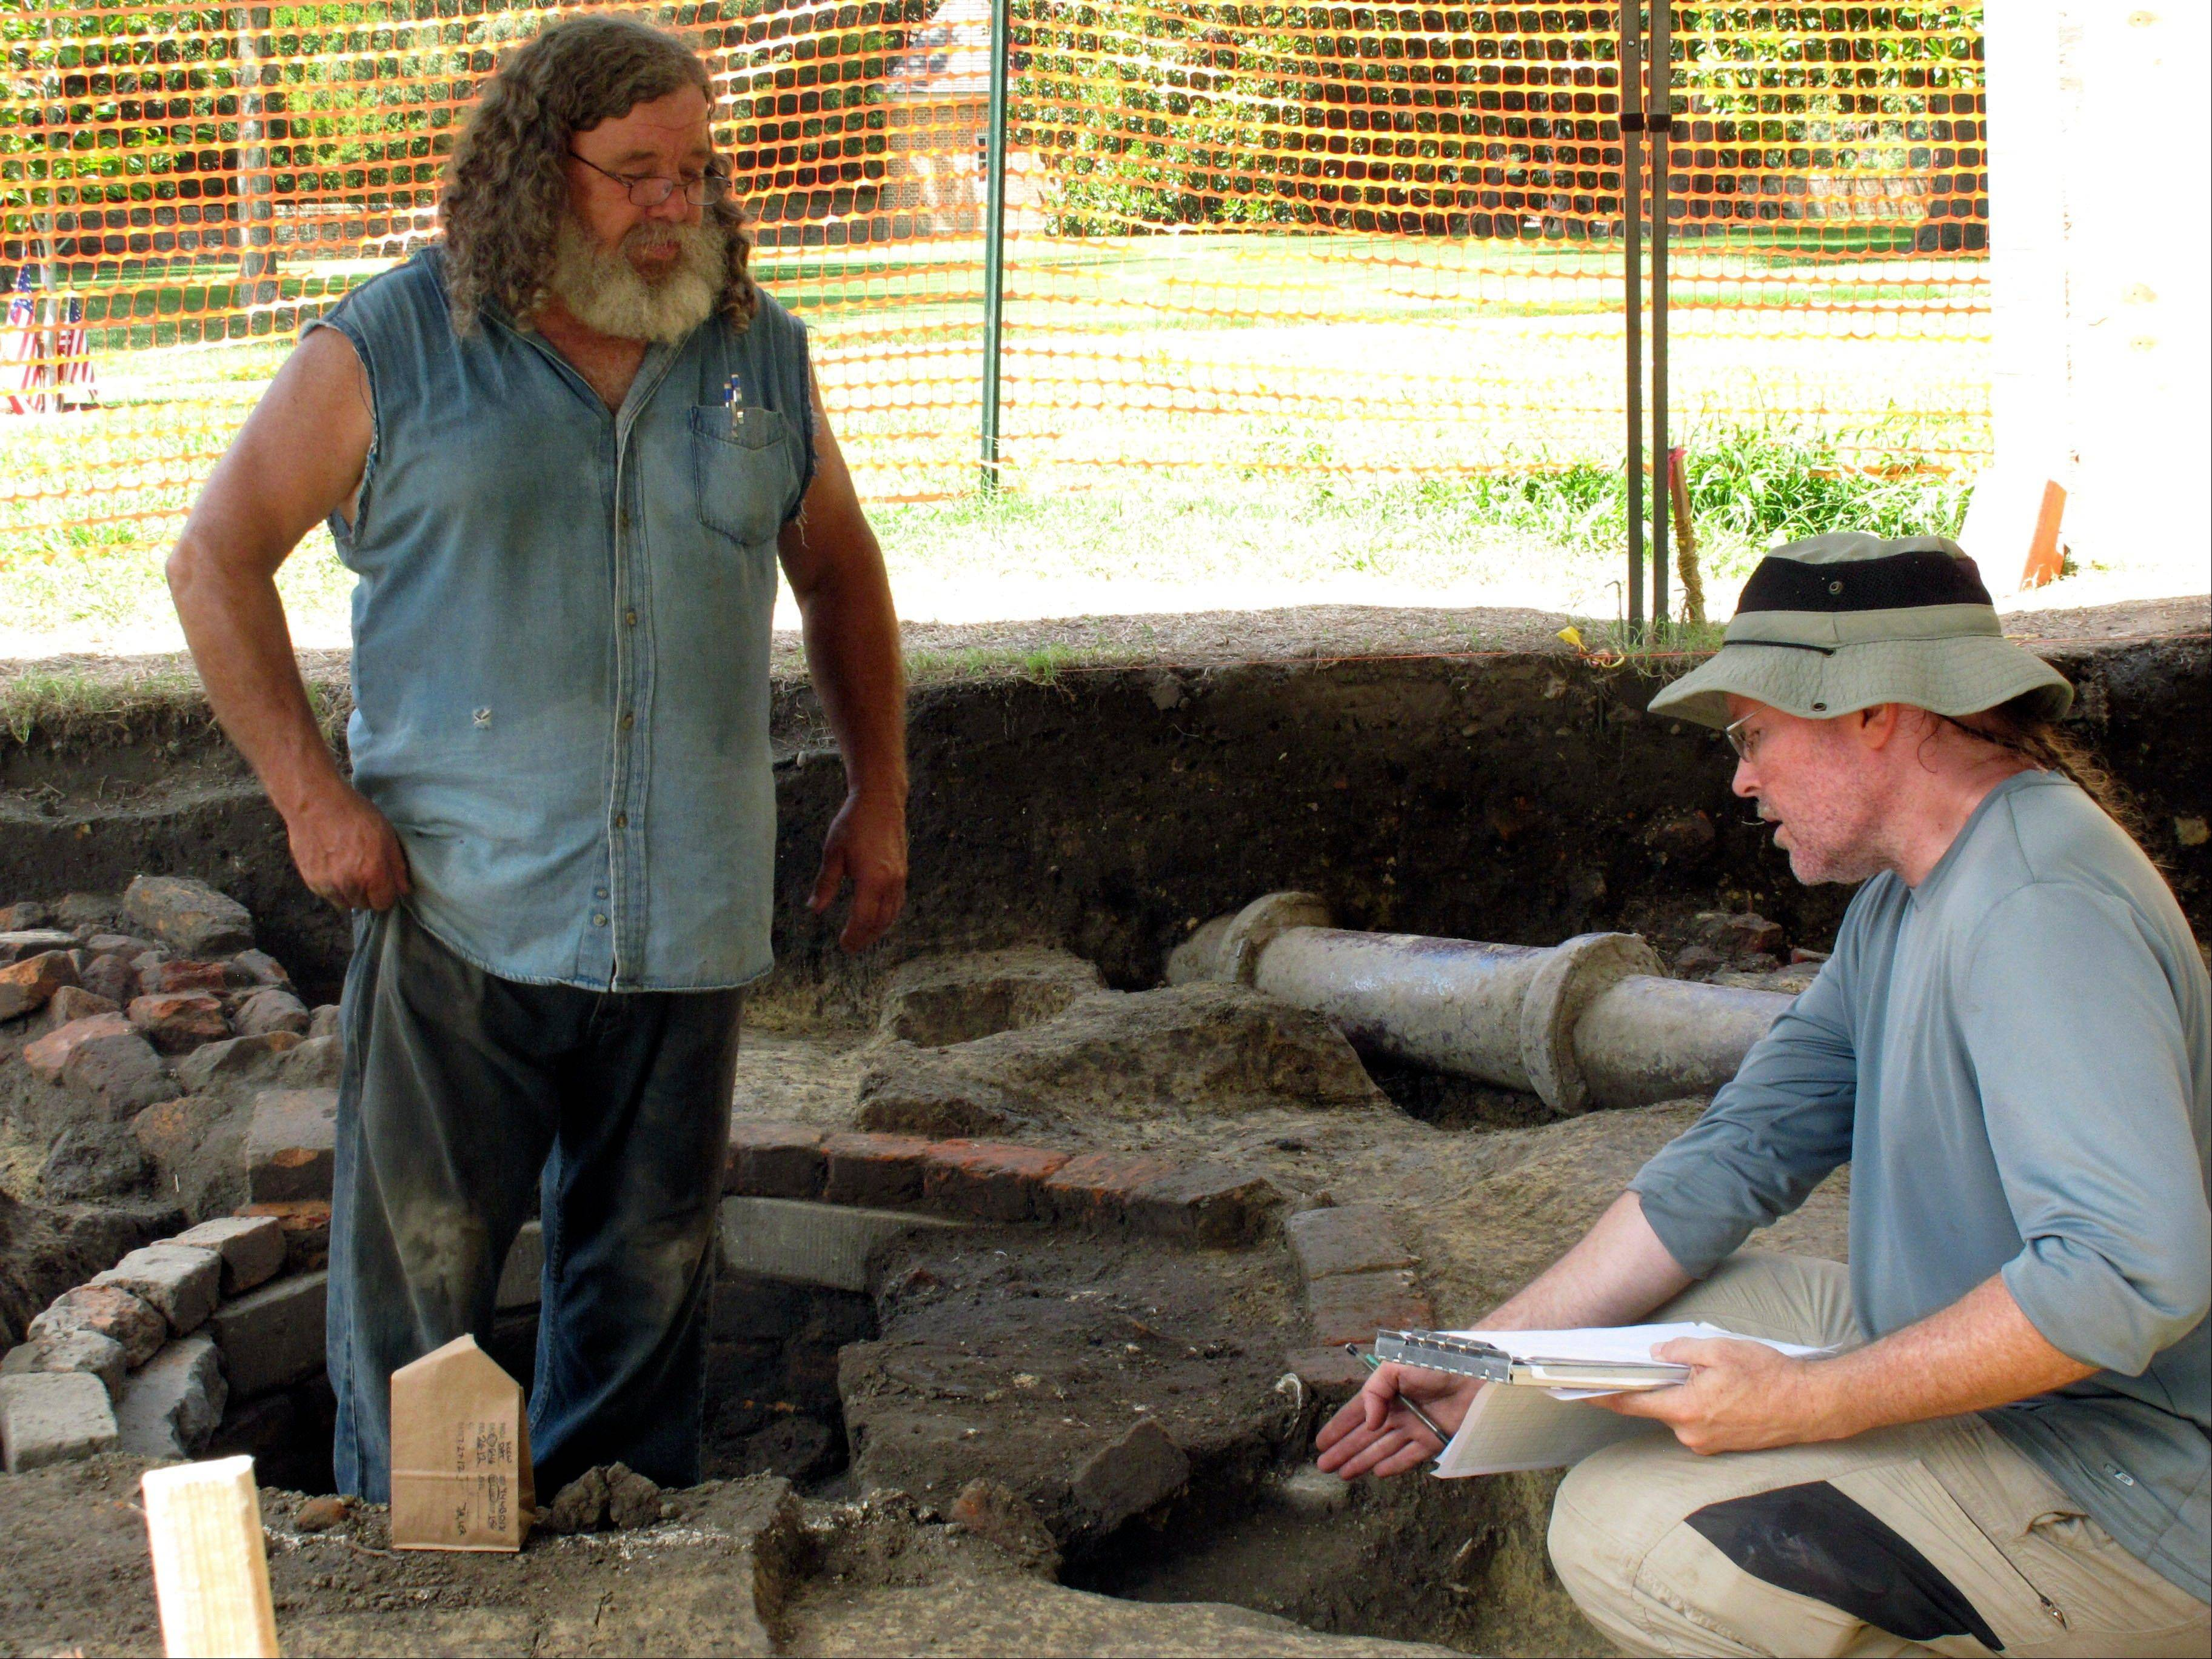 ASSOCIATED PRESS Archaeologists Kevin Goodrich, right, and Jack Aube, left, of the William and Mary Center for Archaeological Research, examine a well dug on the campus by Union troops during the Civil War.